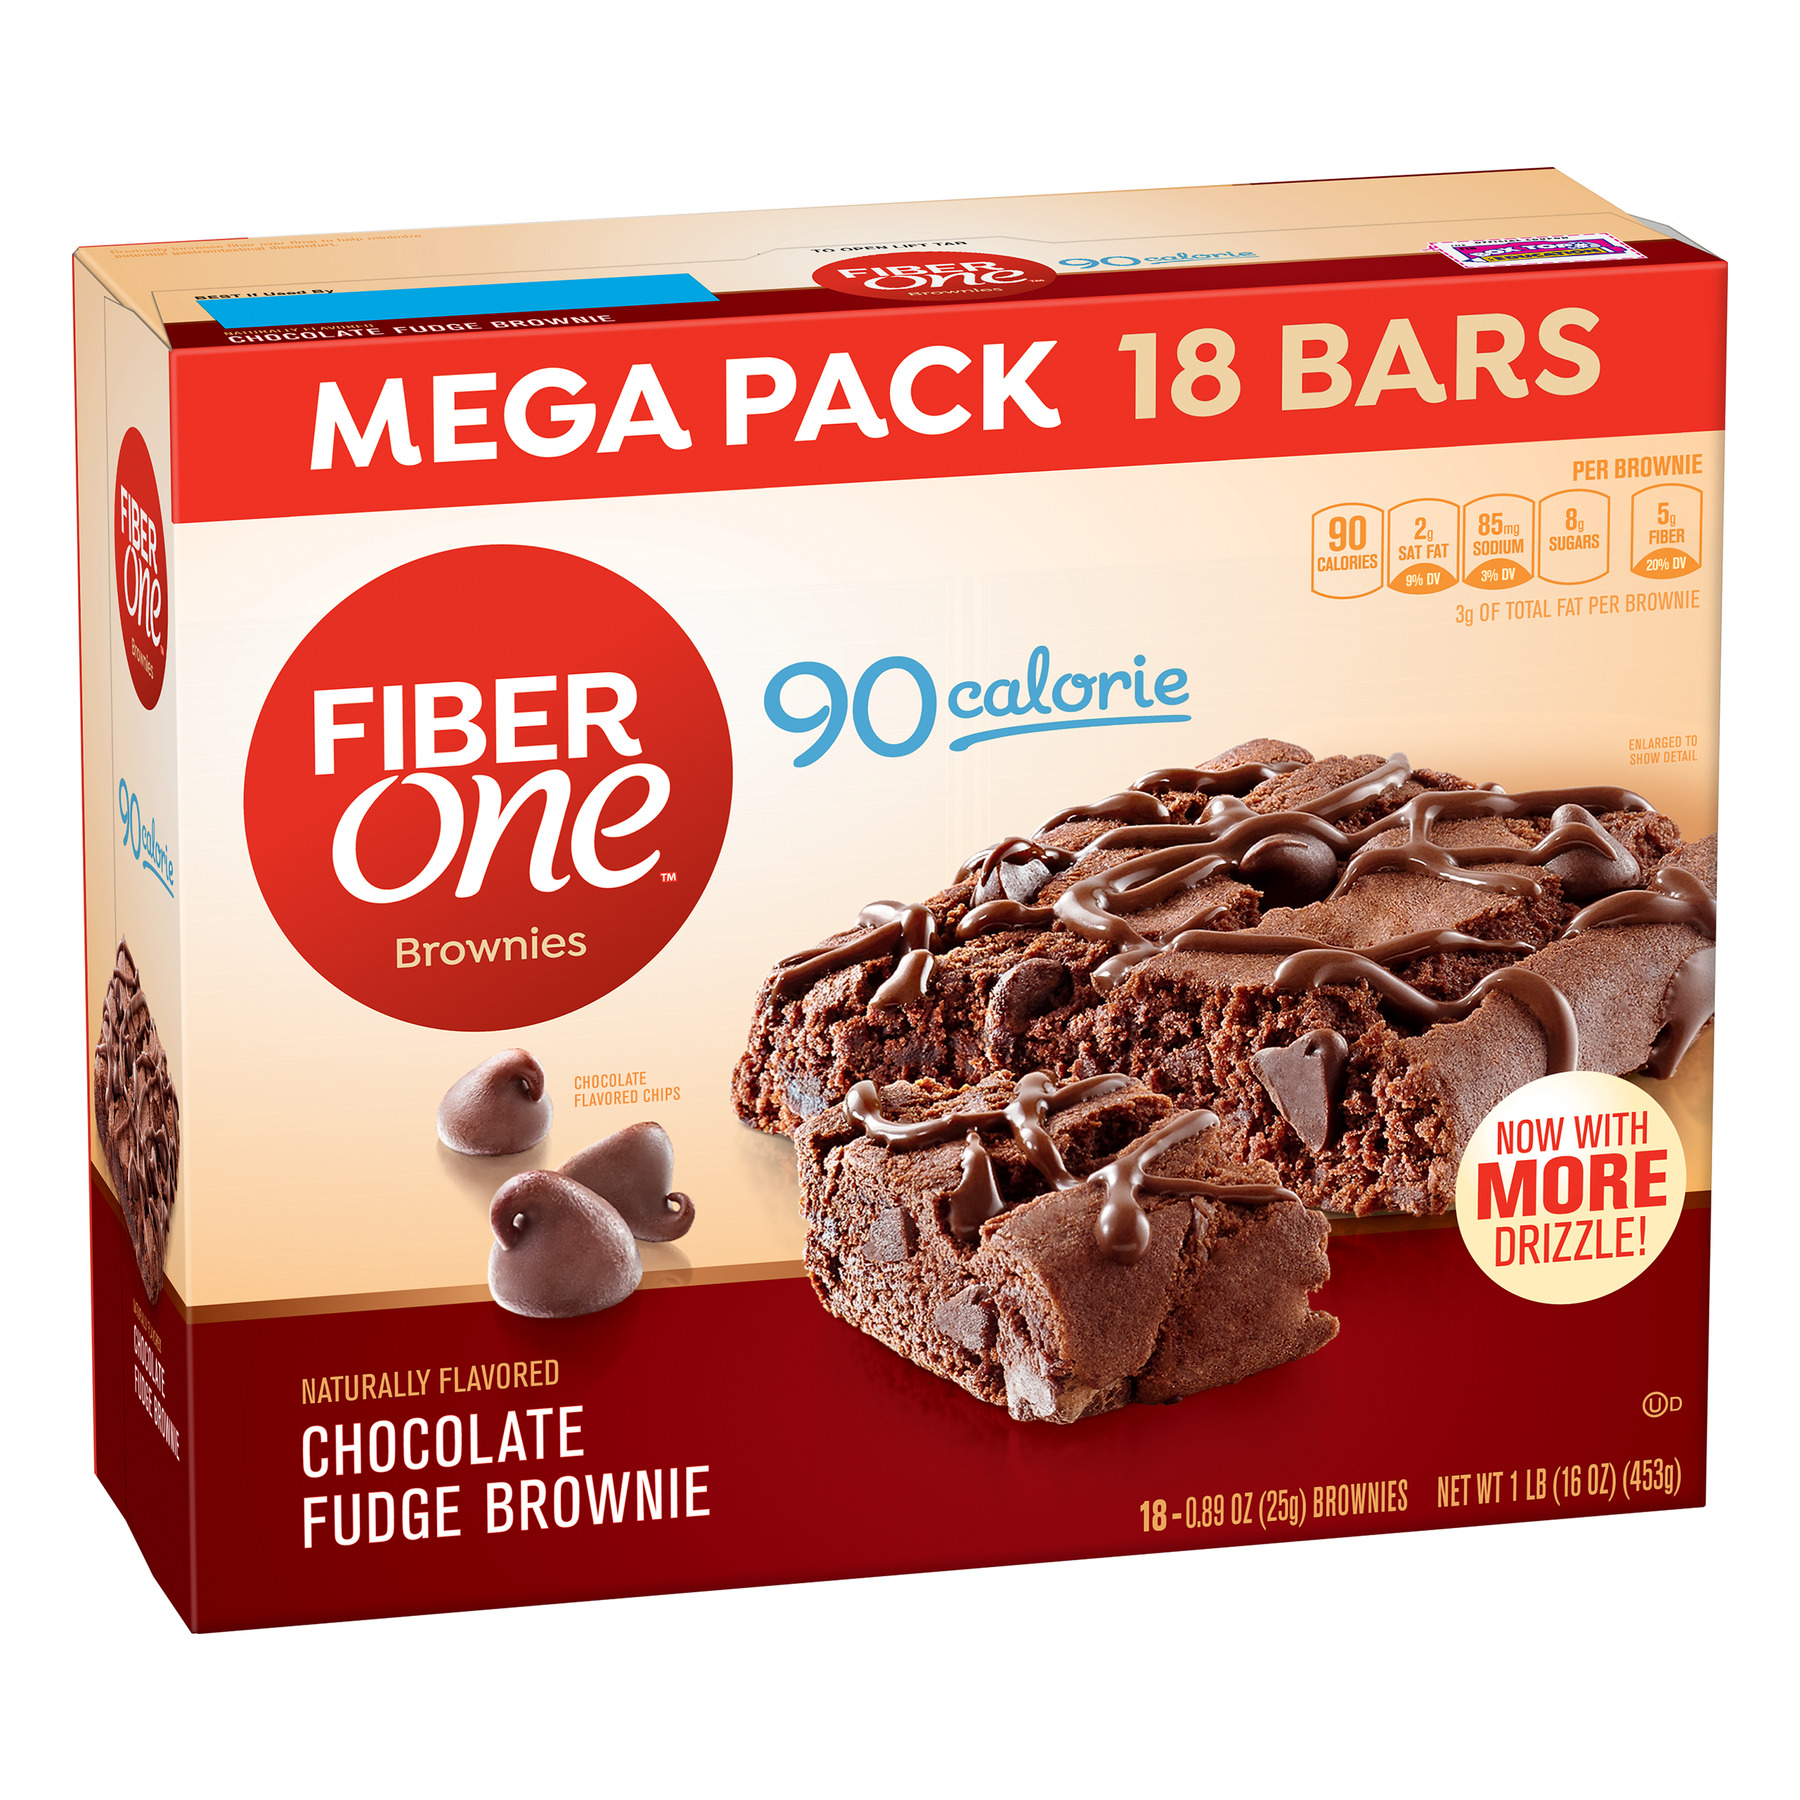 Fiber One Brownies, 90 Calorie Bar, Chocolate Fudge Brownie, 18 Fiber Bars Mega Pack, 16 oz